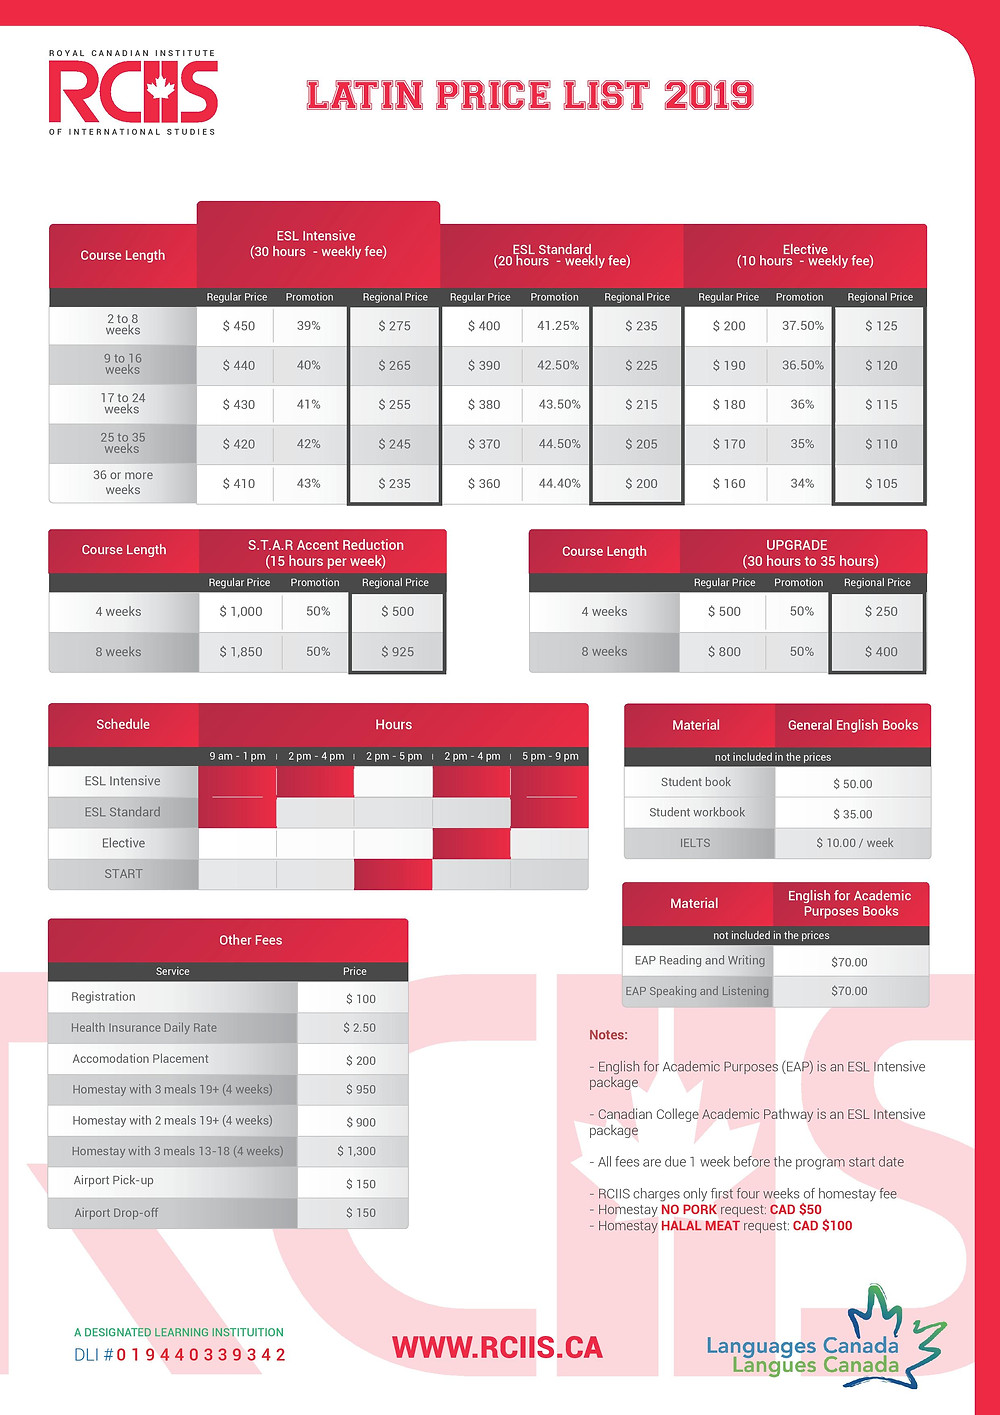 RCIIS Latin Price List 2019 - West Education Group